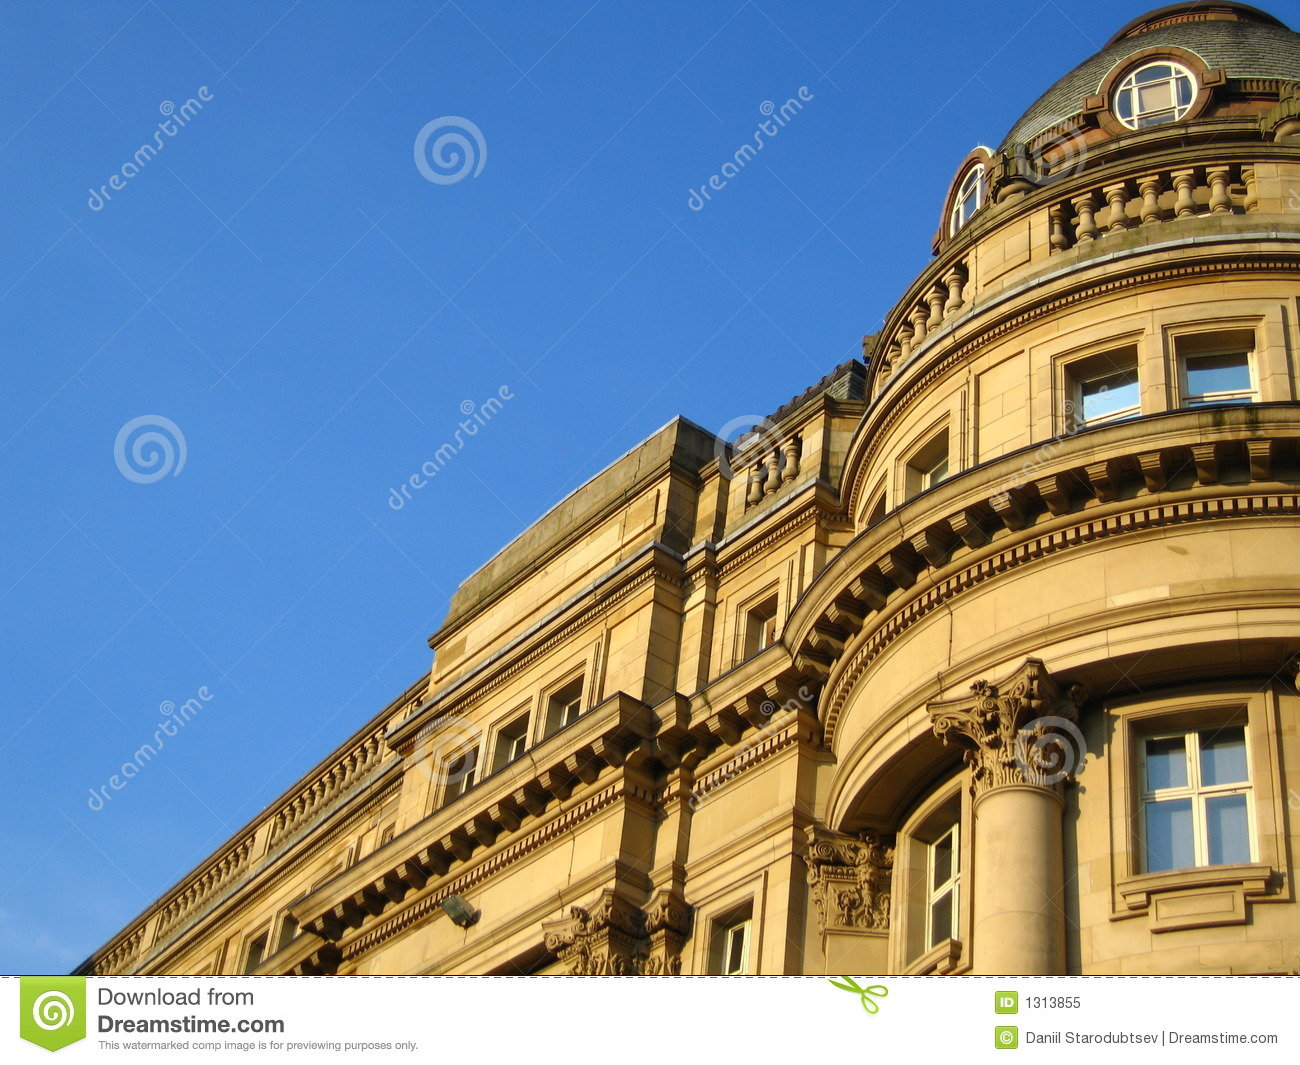 Royalty Free Stock Photo: Manchester historic sites: dreamstime.com/royalty-free-stock-photo-manchester-historic-sites...